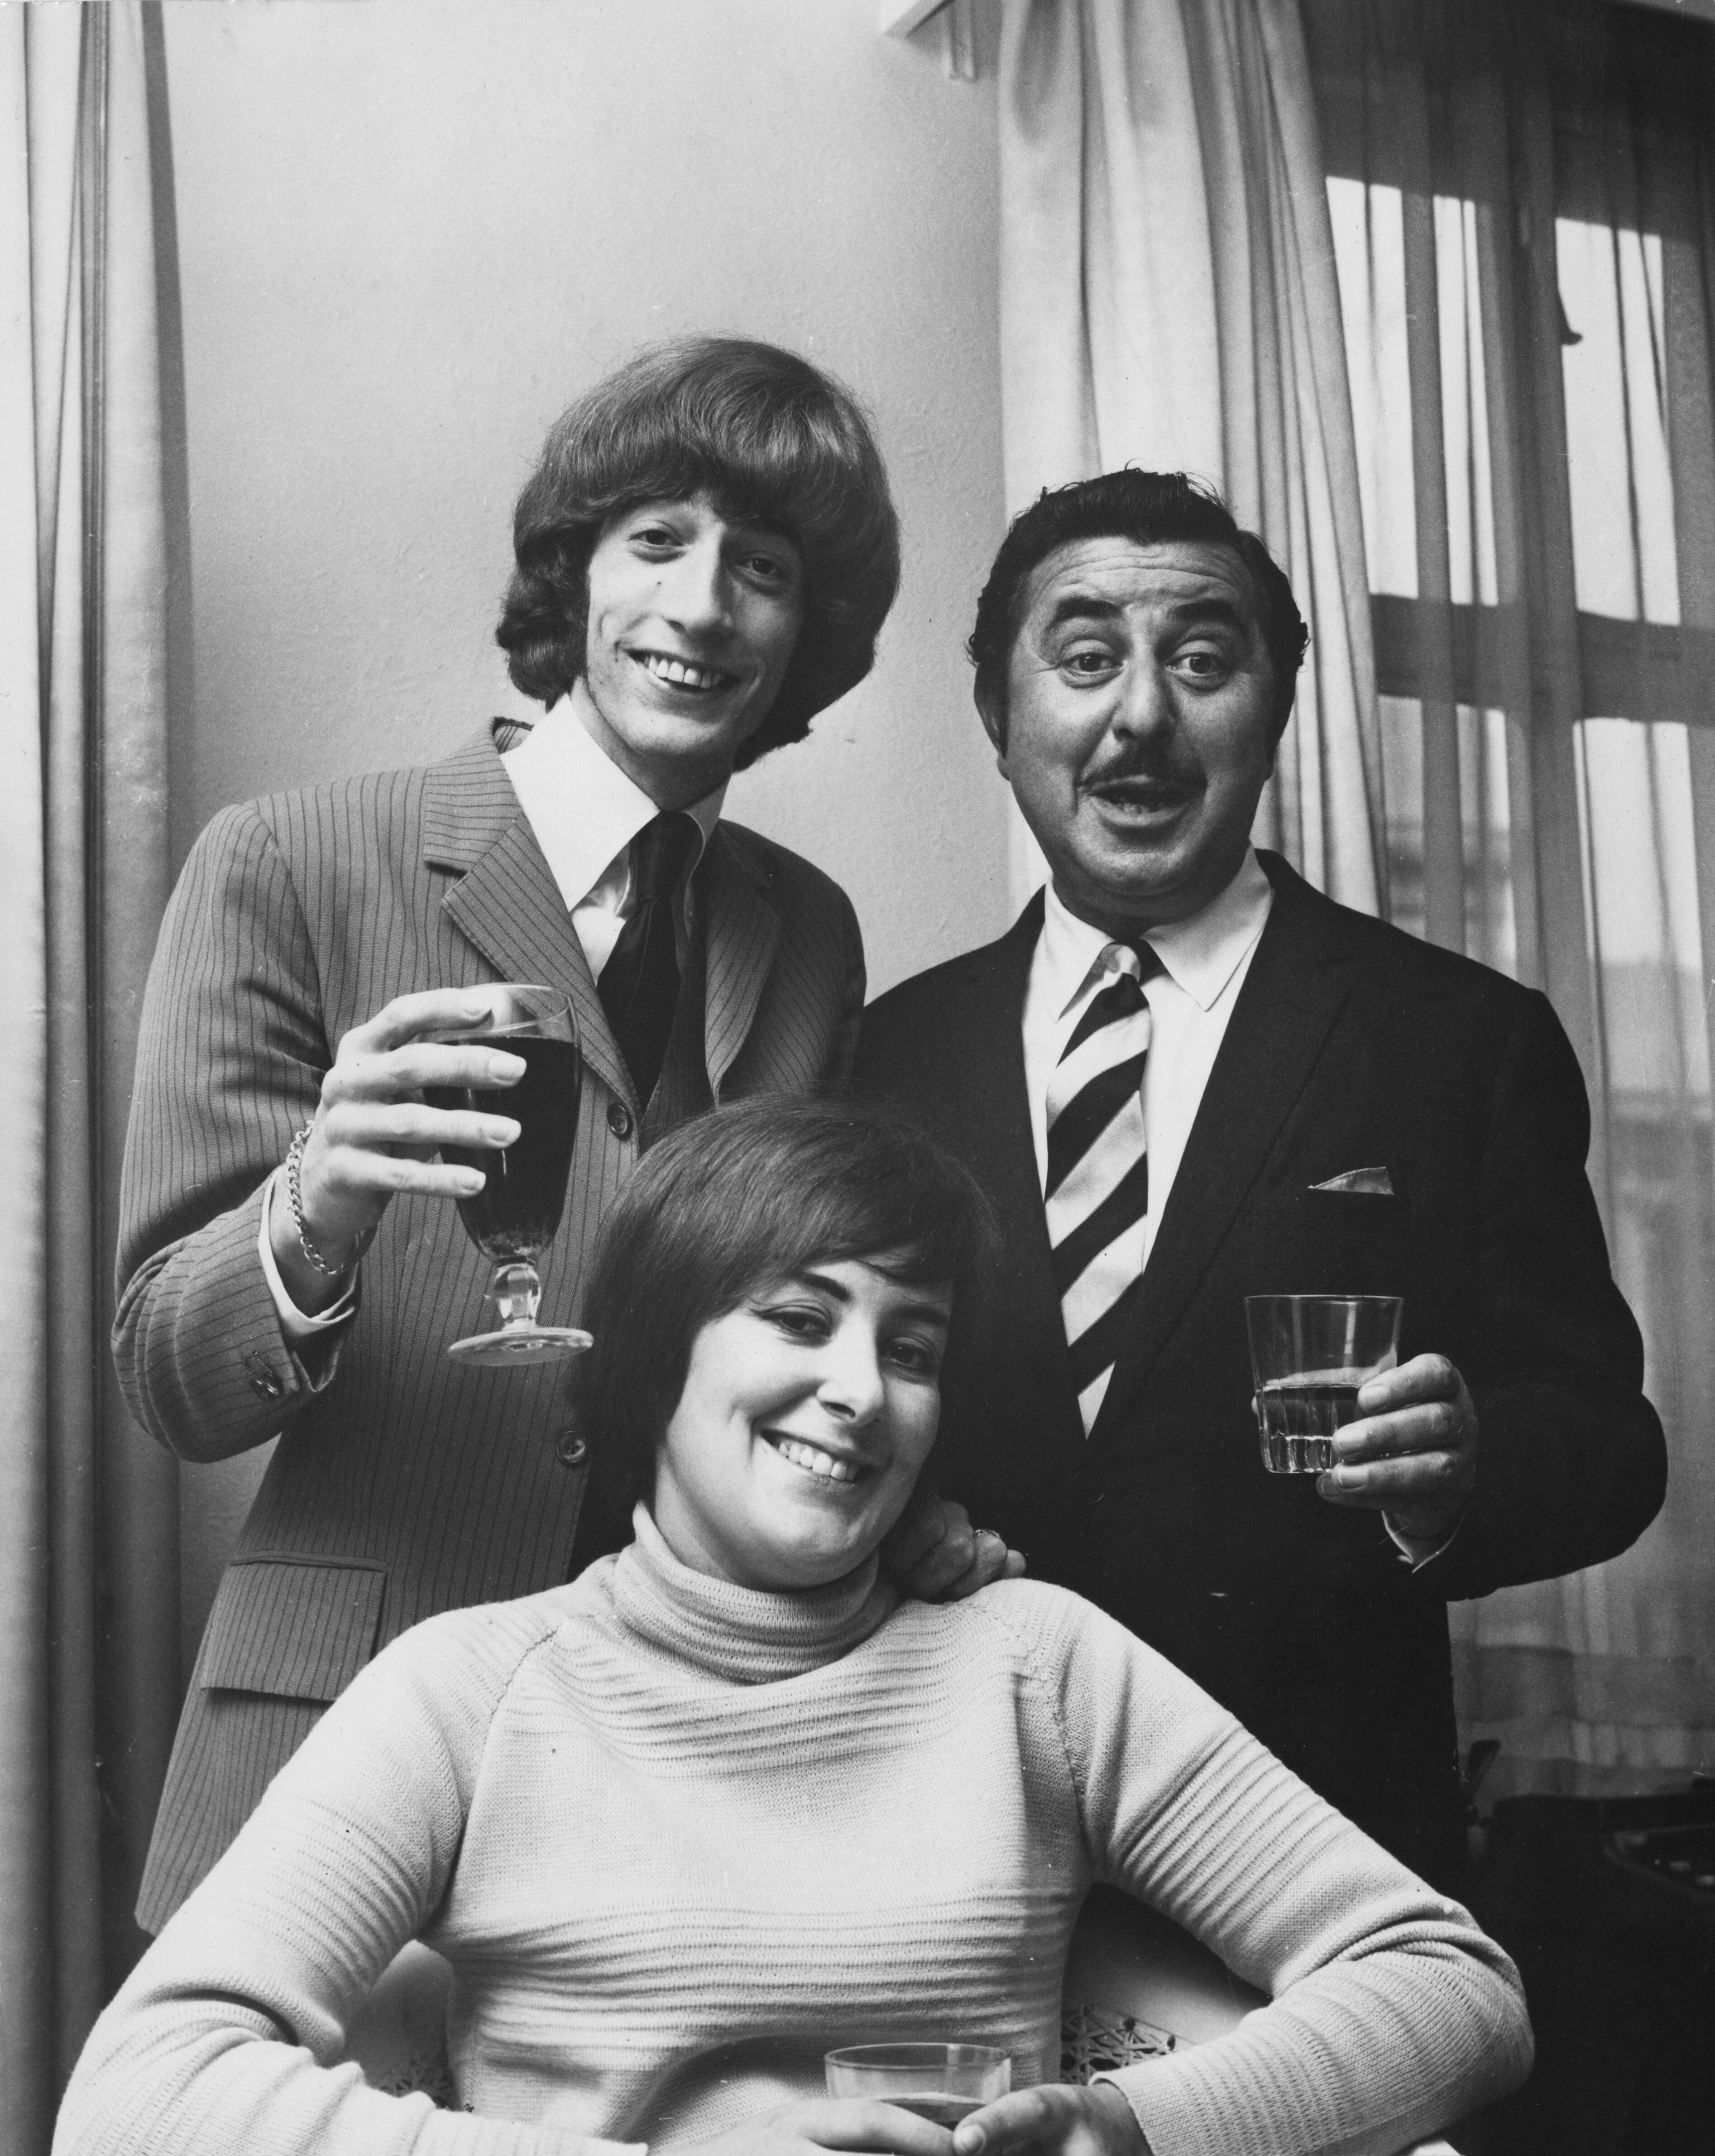 Robin Gibb with his first wife, Molly, and managing director of NEMS Enterprises, Vic Lewis, celebrating Gibb's signing of a contract with NEMS, 5th September 1969.   Source: Getty Images